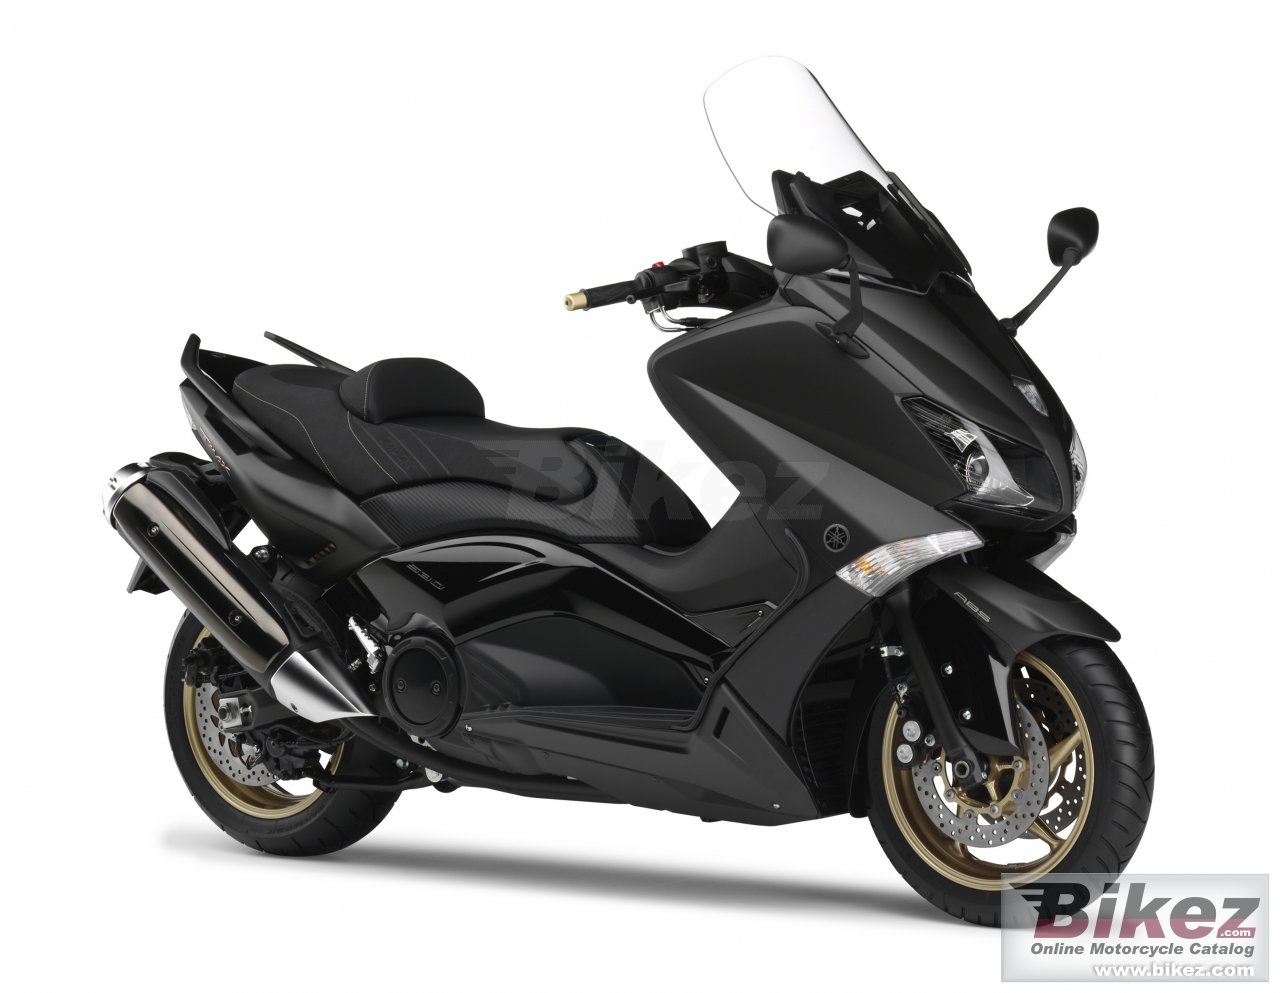 Big Yamaha tmax black max abs picture and wallpaper from Bikez.com